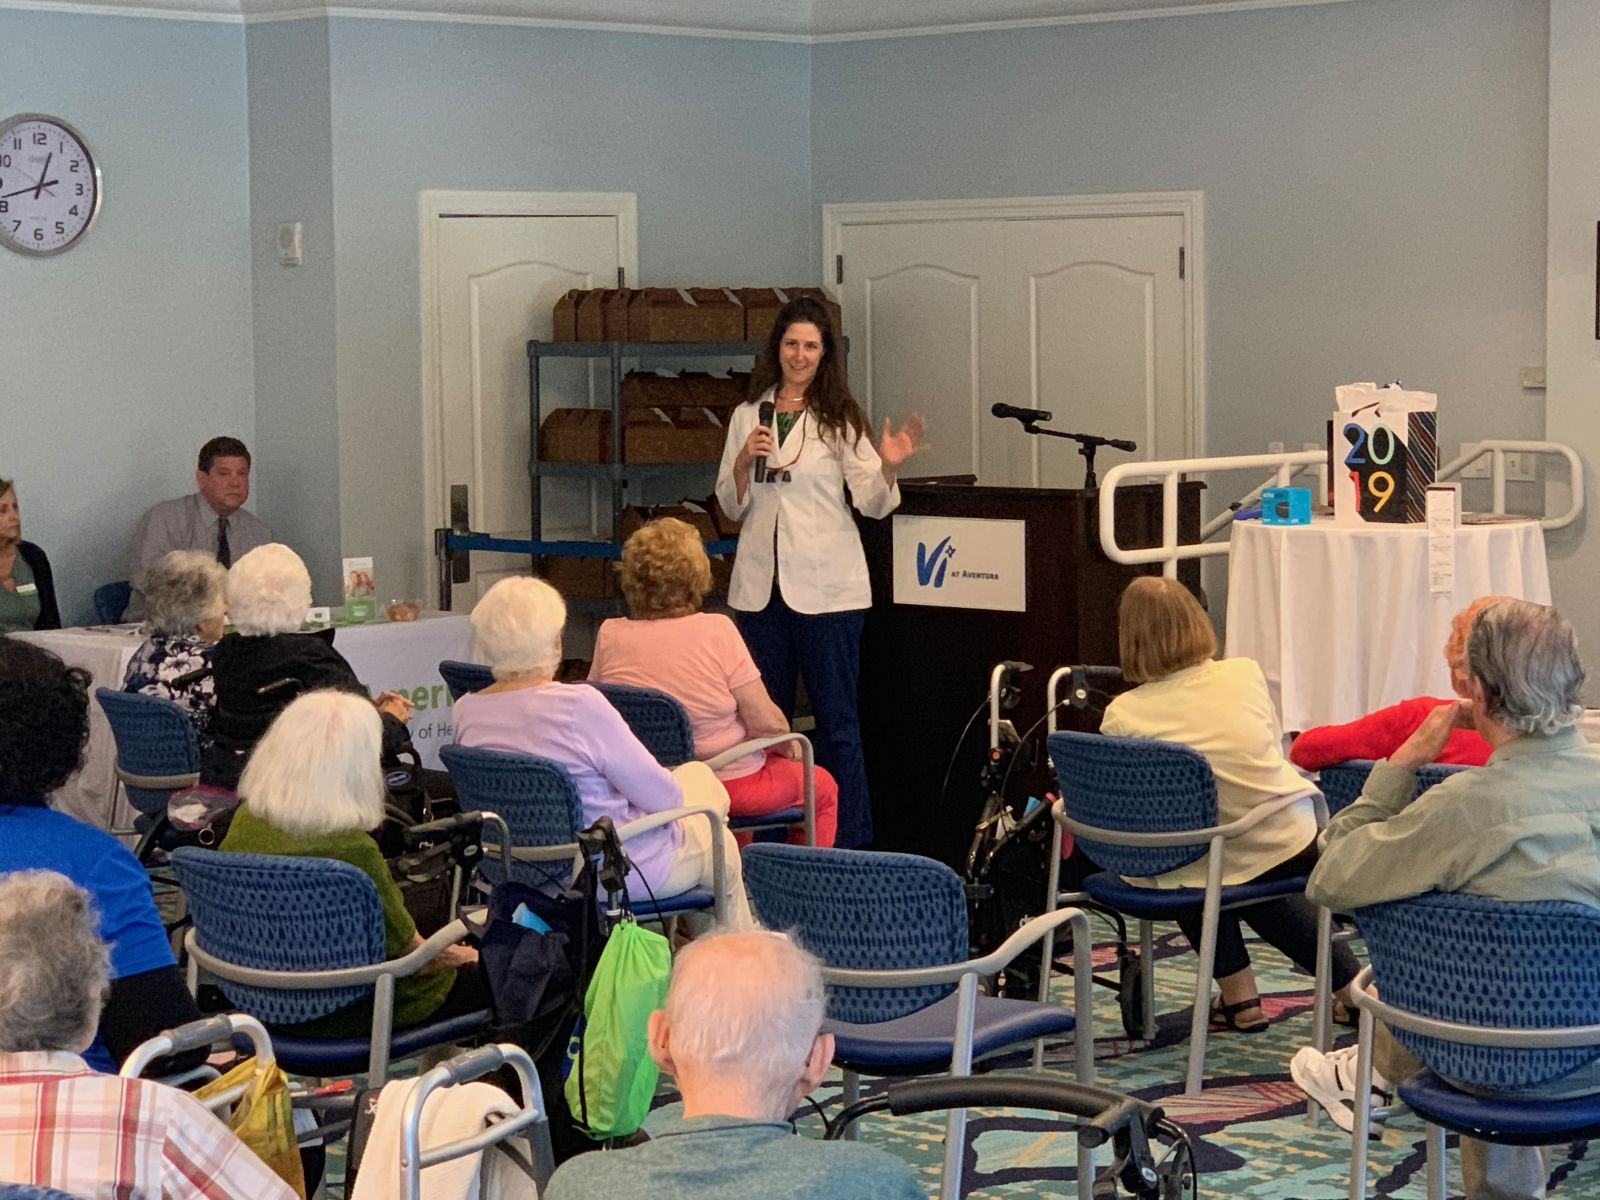 Aventura Dental Group participated at an Annual Senior Healthcare Event in Aventura Florida. Dr. Jessica Cismas spoke about the importance of staying healthy and the inportance of the oral hygiene. For more information about senior oral healthcare or how to find a great local dental practice near your facility, please call us.